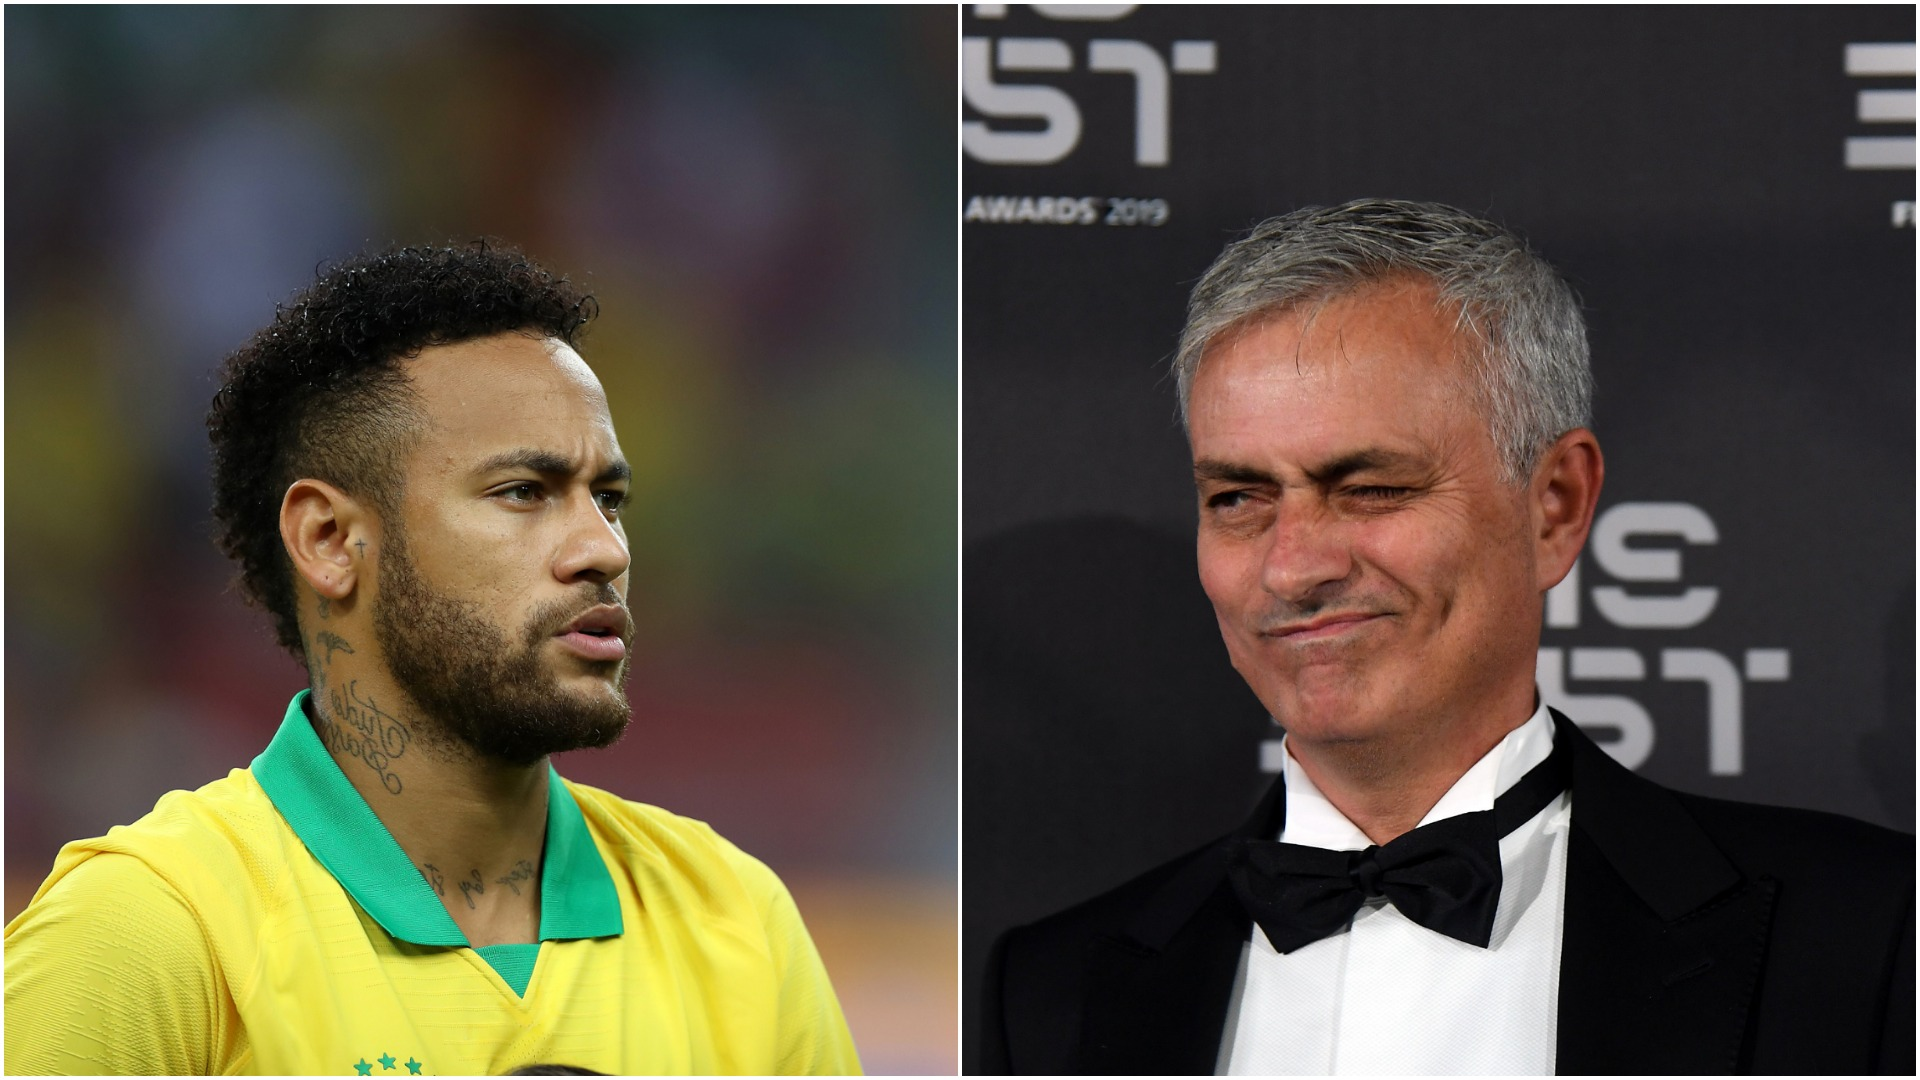 Neymar and Mourinho at Barcelona? There would be difficulties, says Iniesta